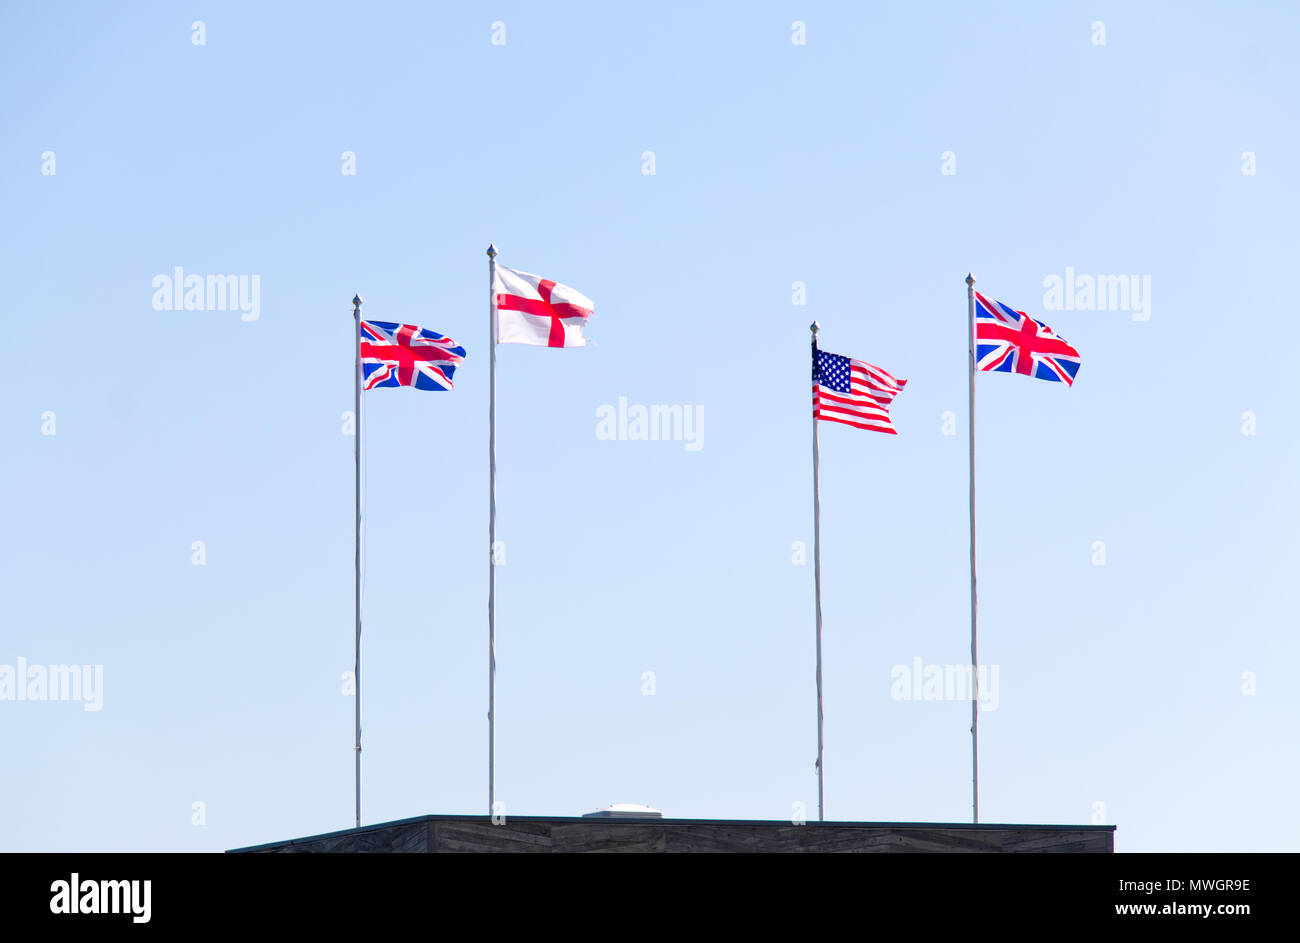 Union Jack, George cross and the Stars and Stripes flying to celebrate the royal wedding of Prince Harry and Meghan Markle Stock Photo